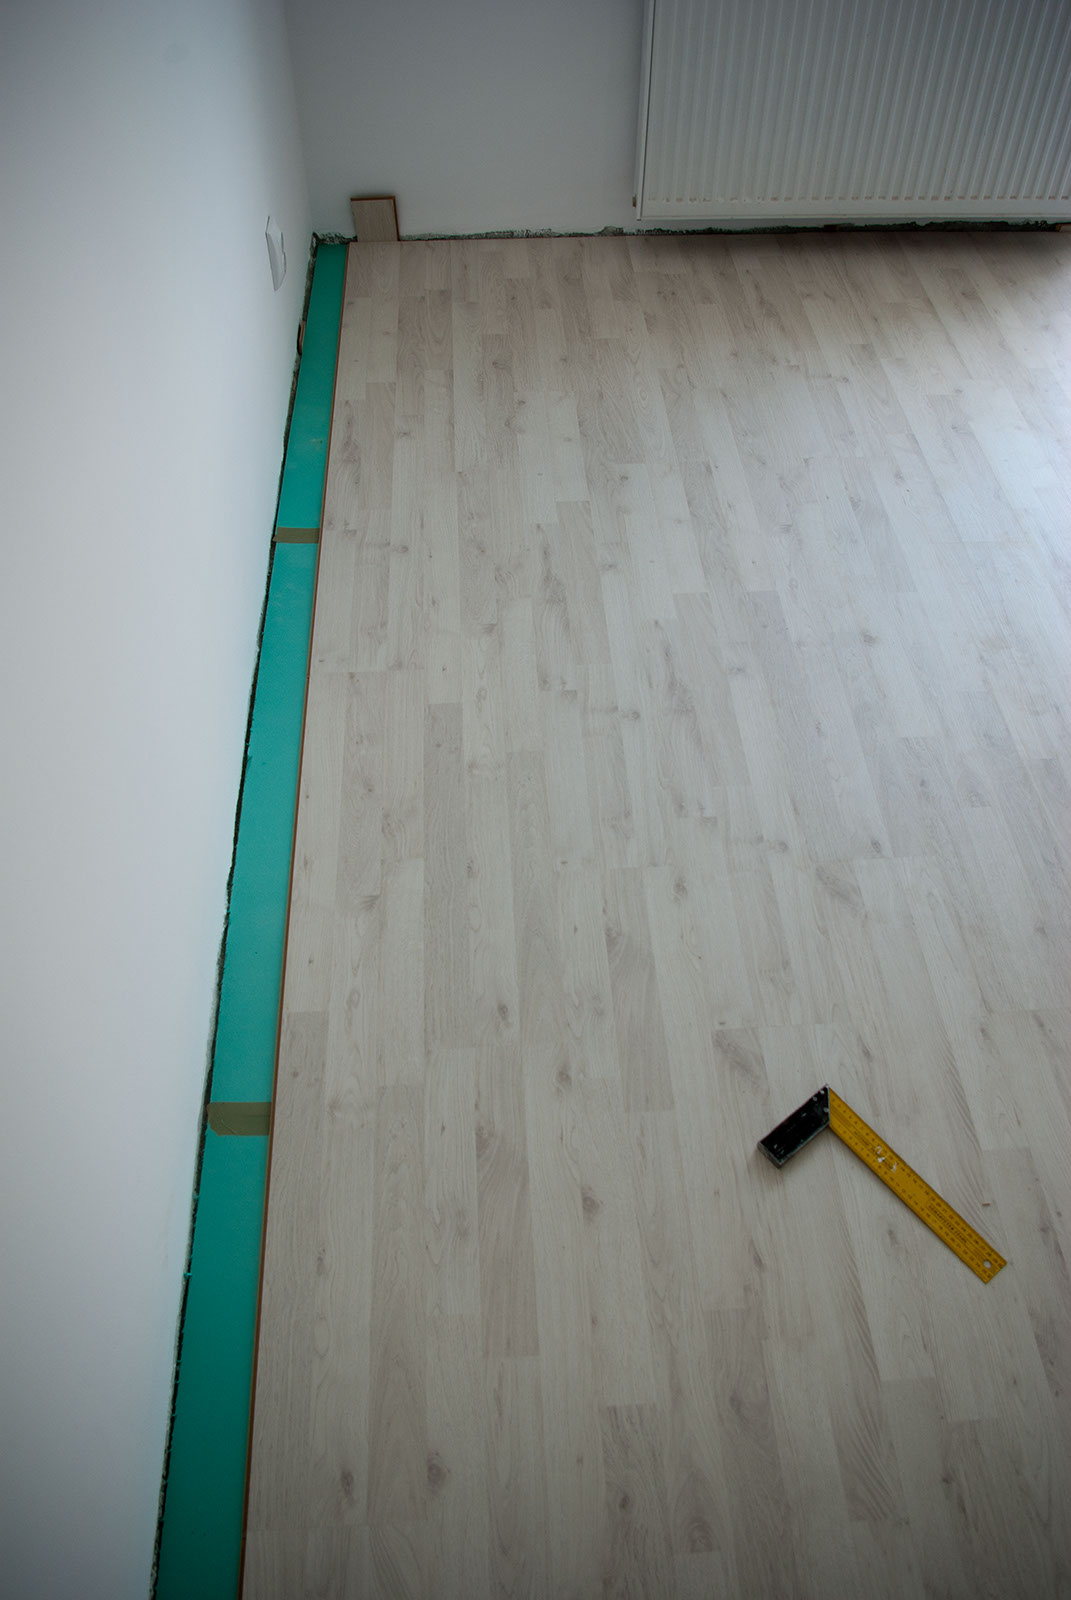 Comlaminate Flooring Walls : Laminate Flooring: Use Laminate Flooring On Walls